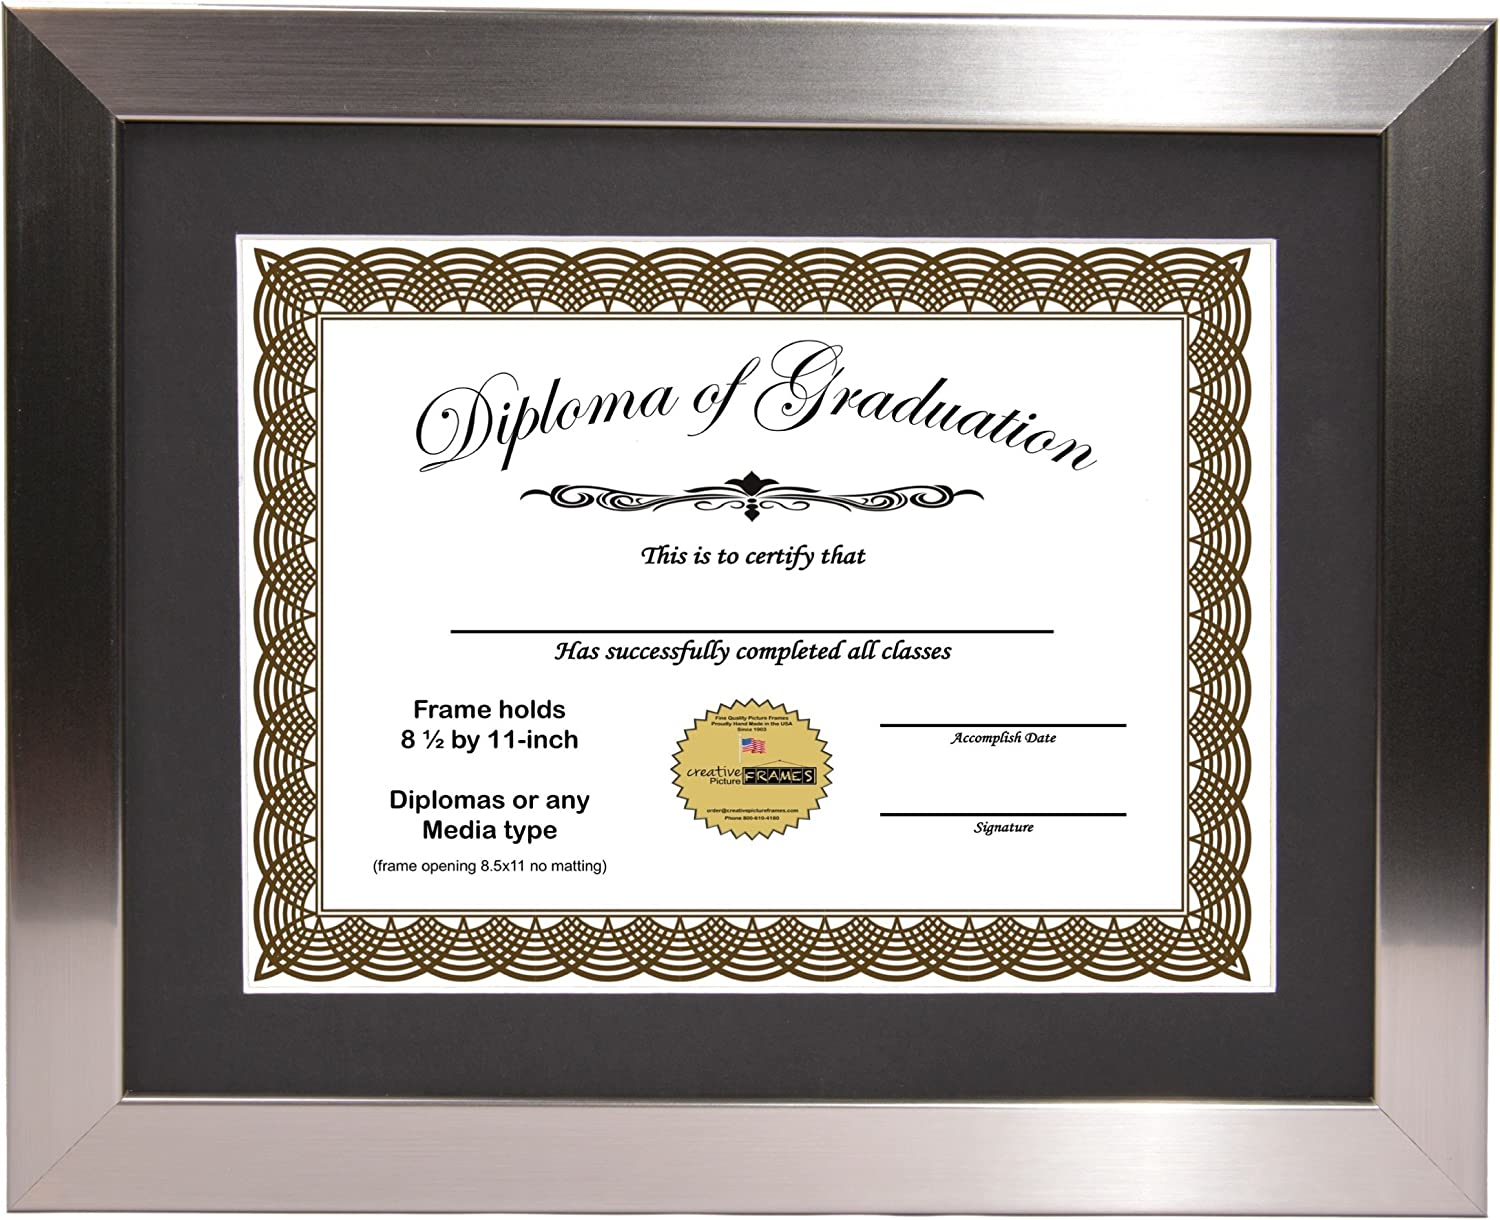 Mahogany Document Frame Display 8.5 by 11-inch with Mat o 11x14mh-w CreativePF